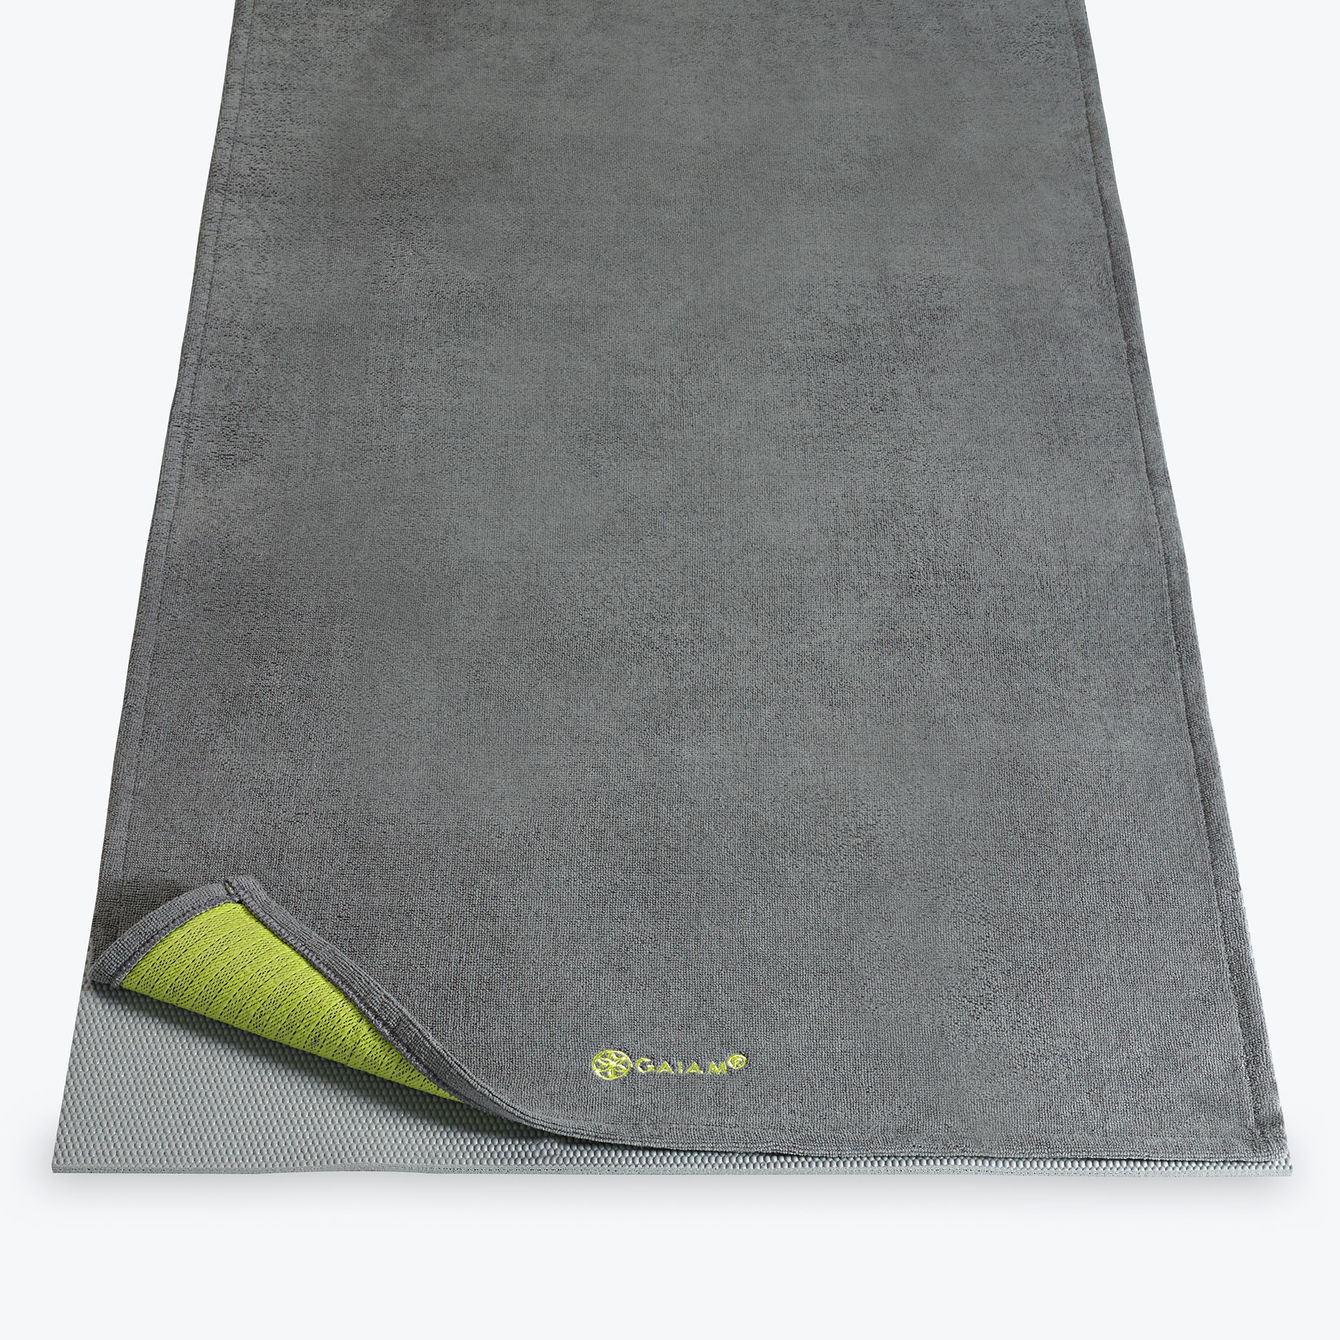 Gaiam Grippy Yoga Mat Towel Gray/Citron